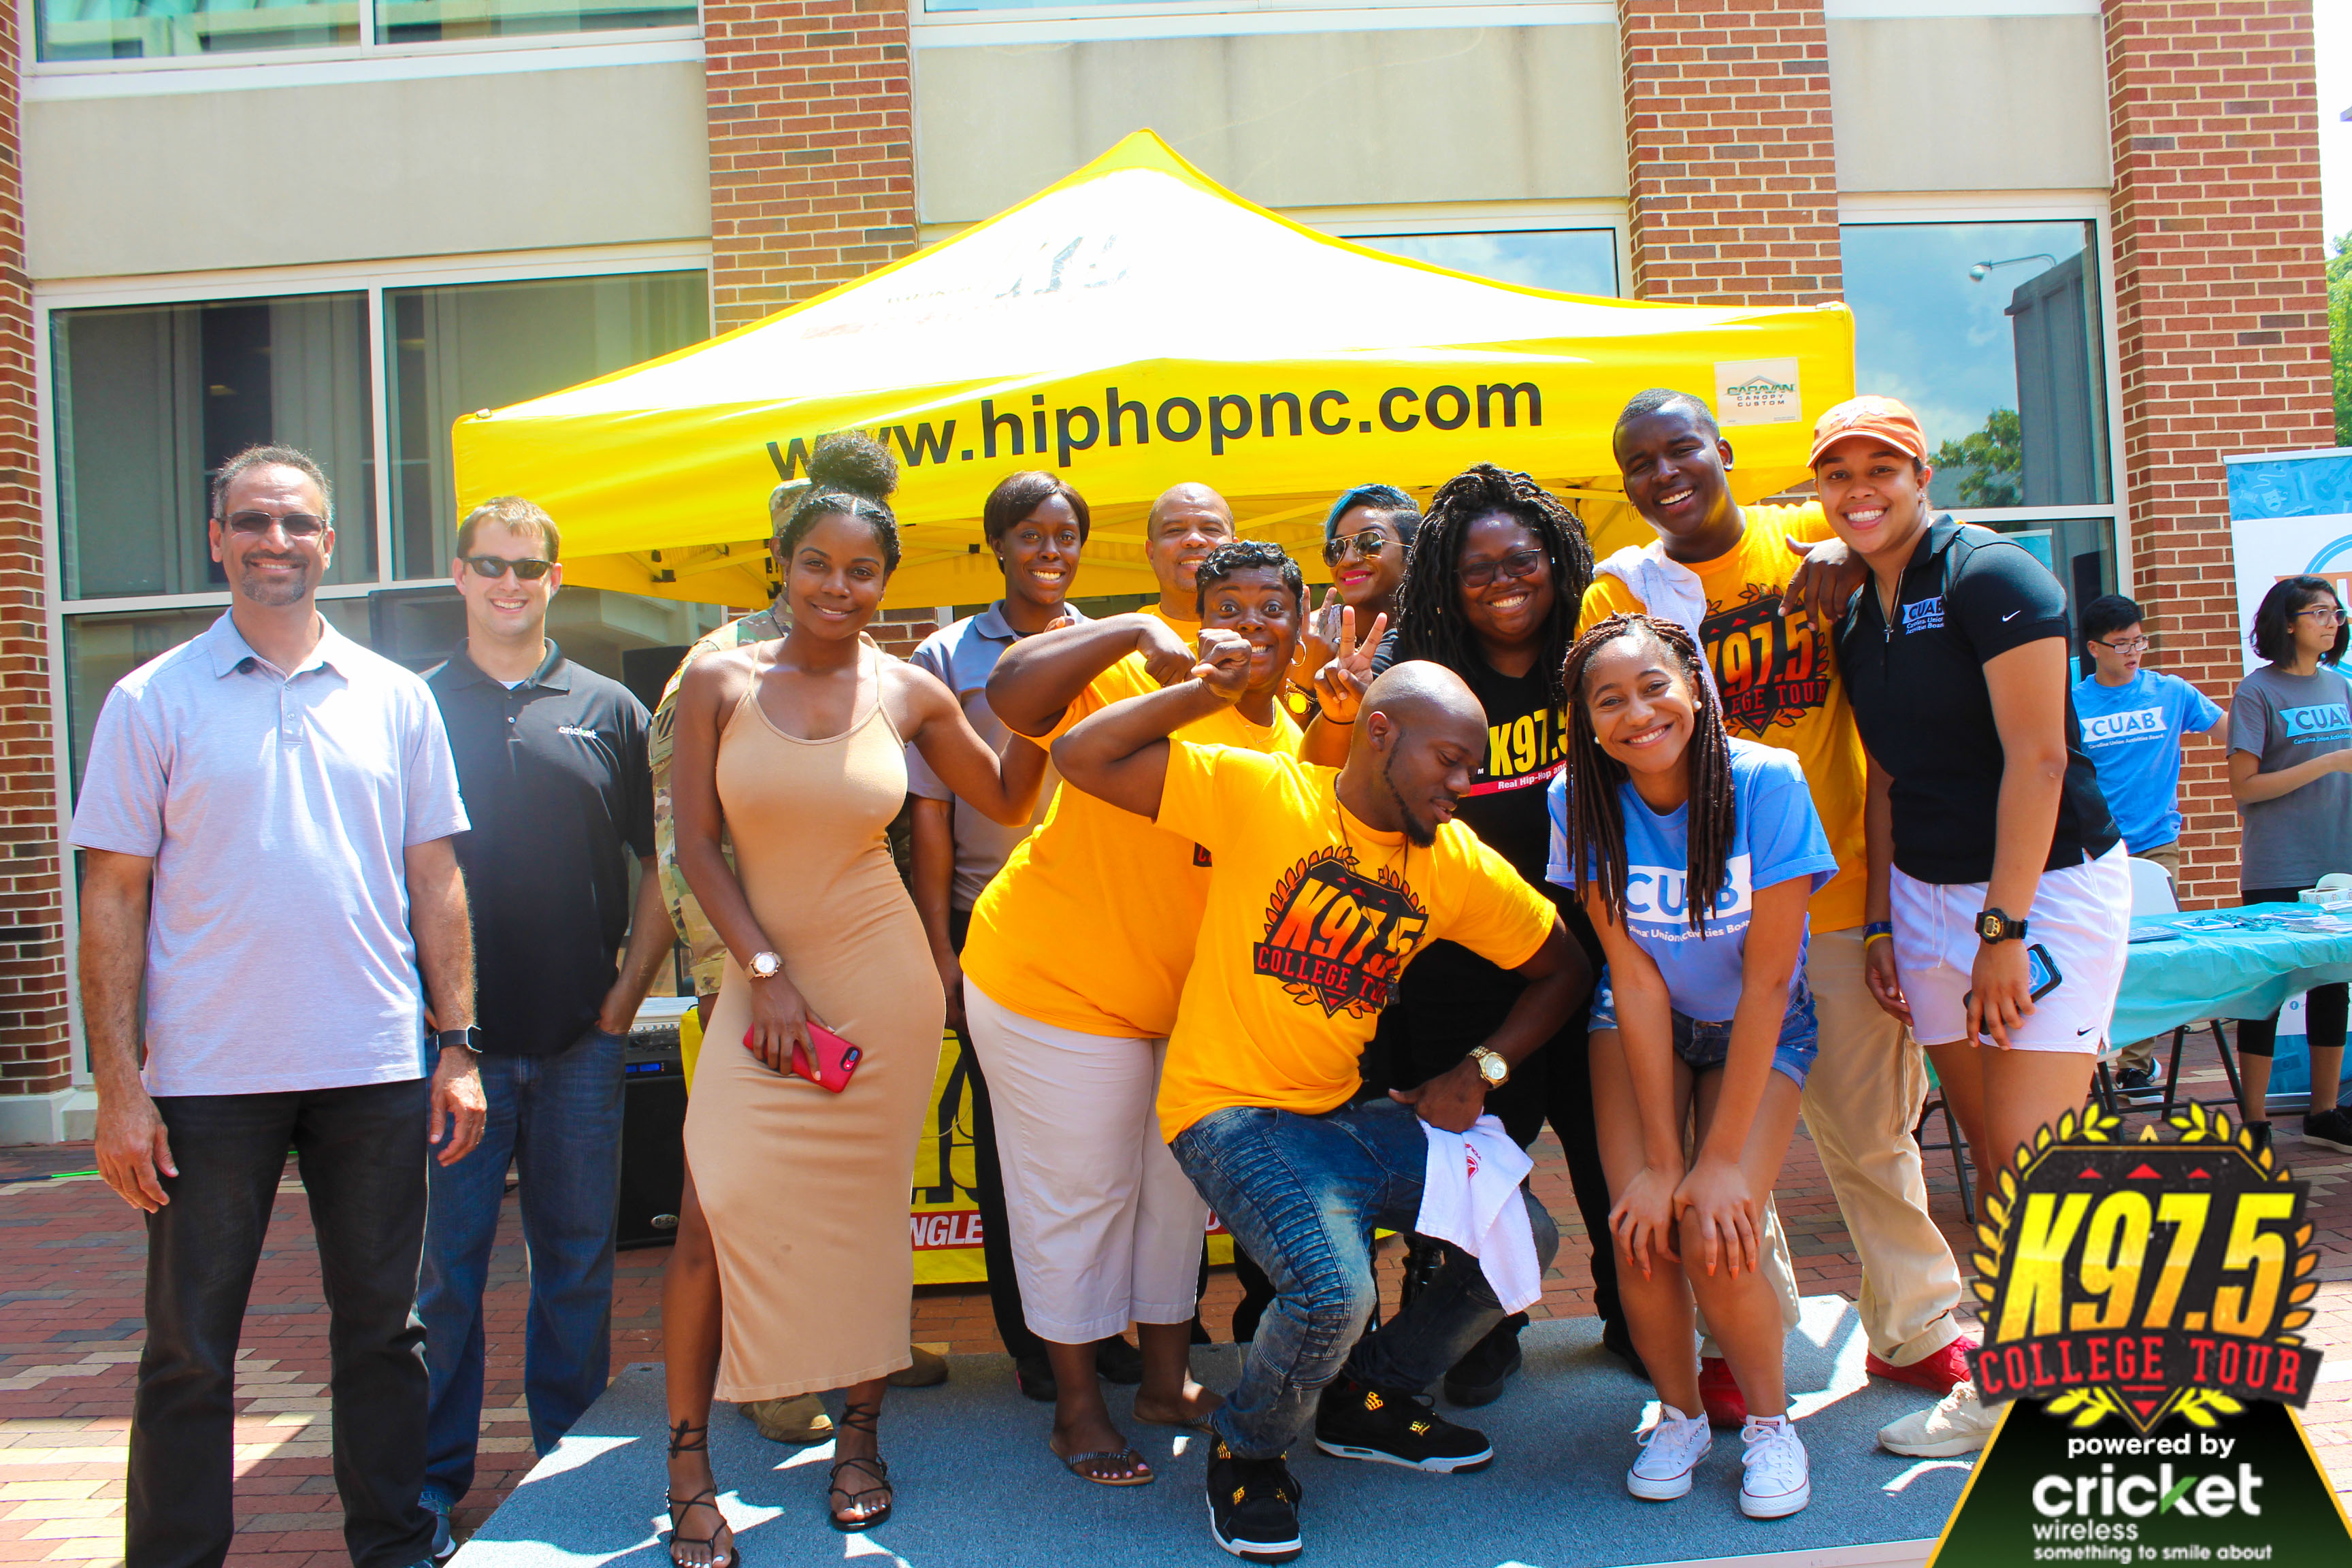 K97.5 College Tour: UNC Chapel Hill